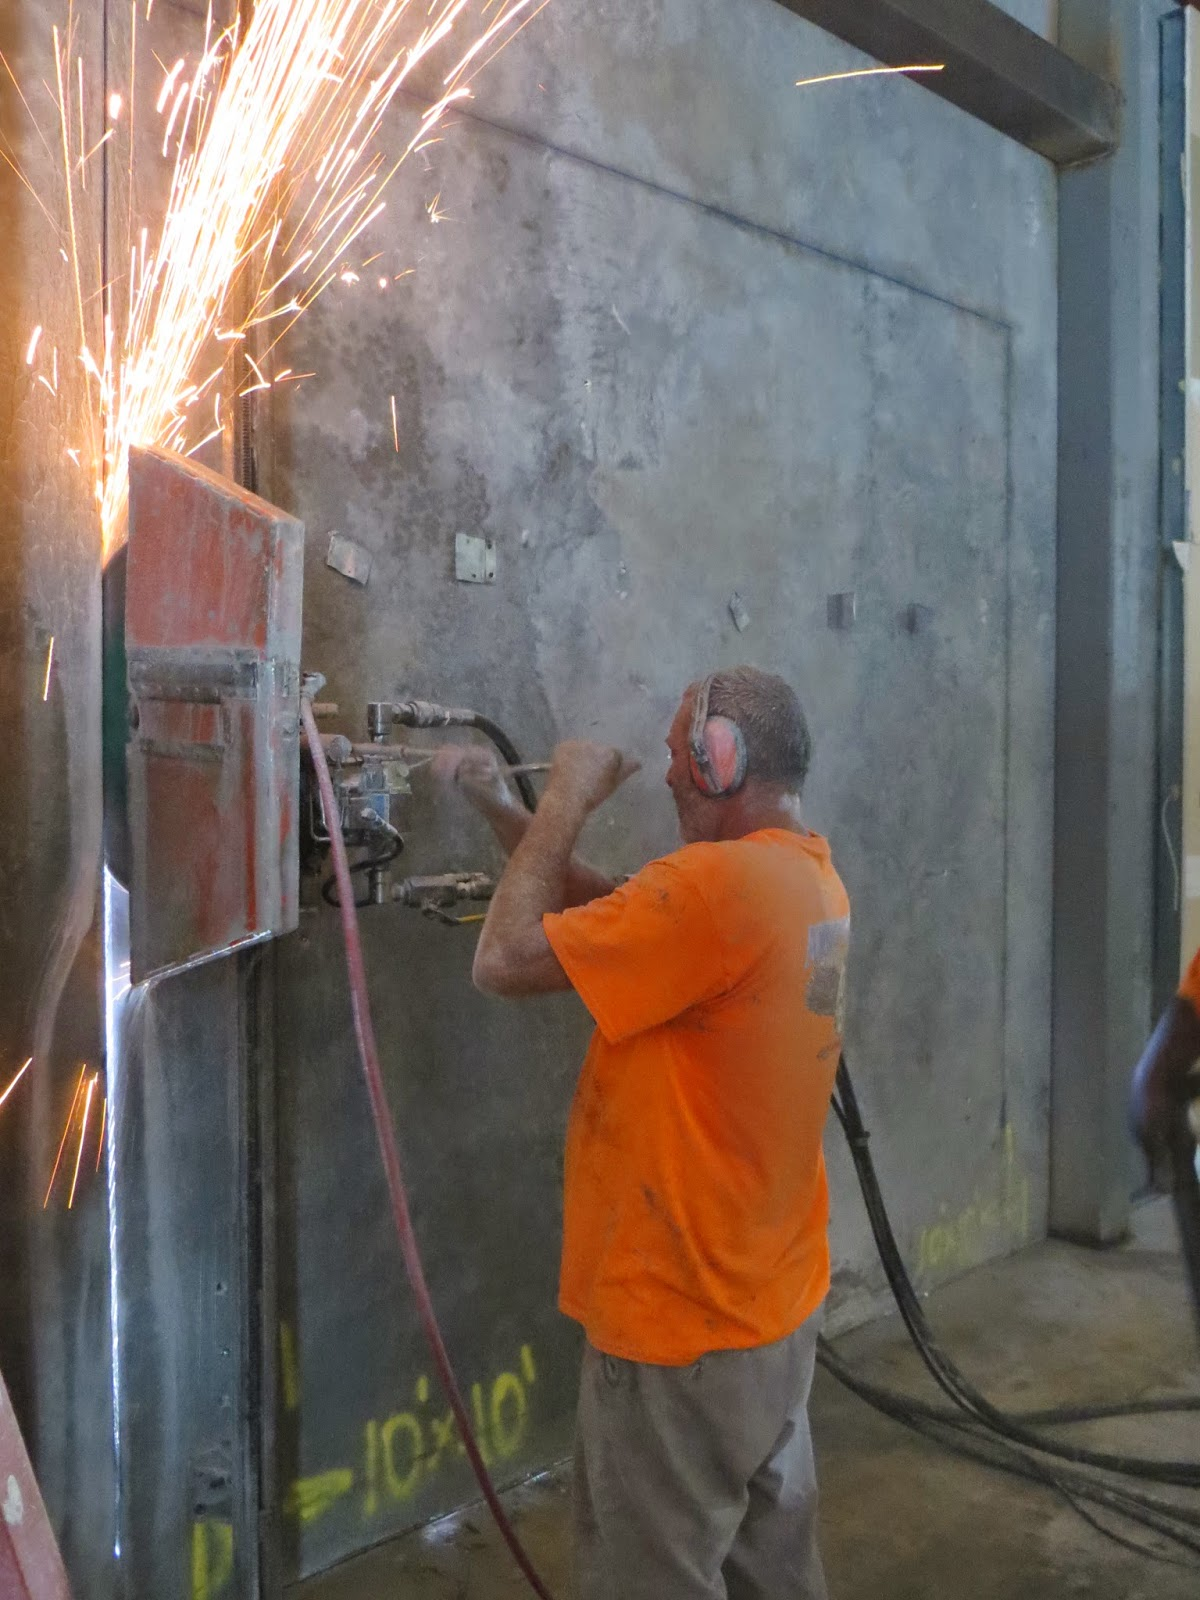 Commercial and Industrial Concrete sawing and breaking in Orlando FL